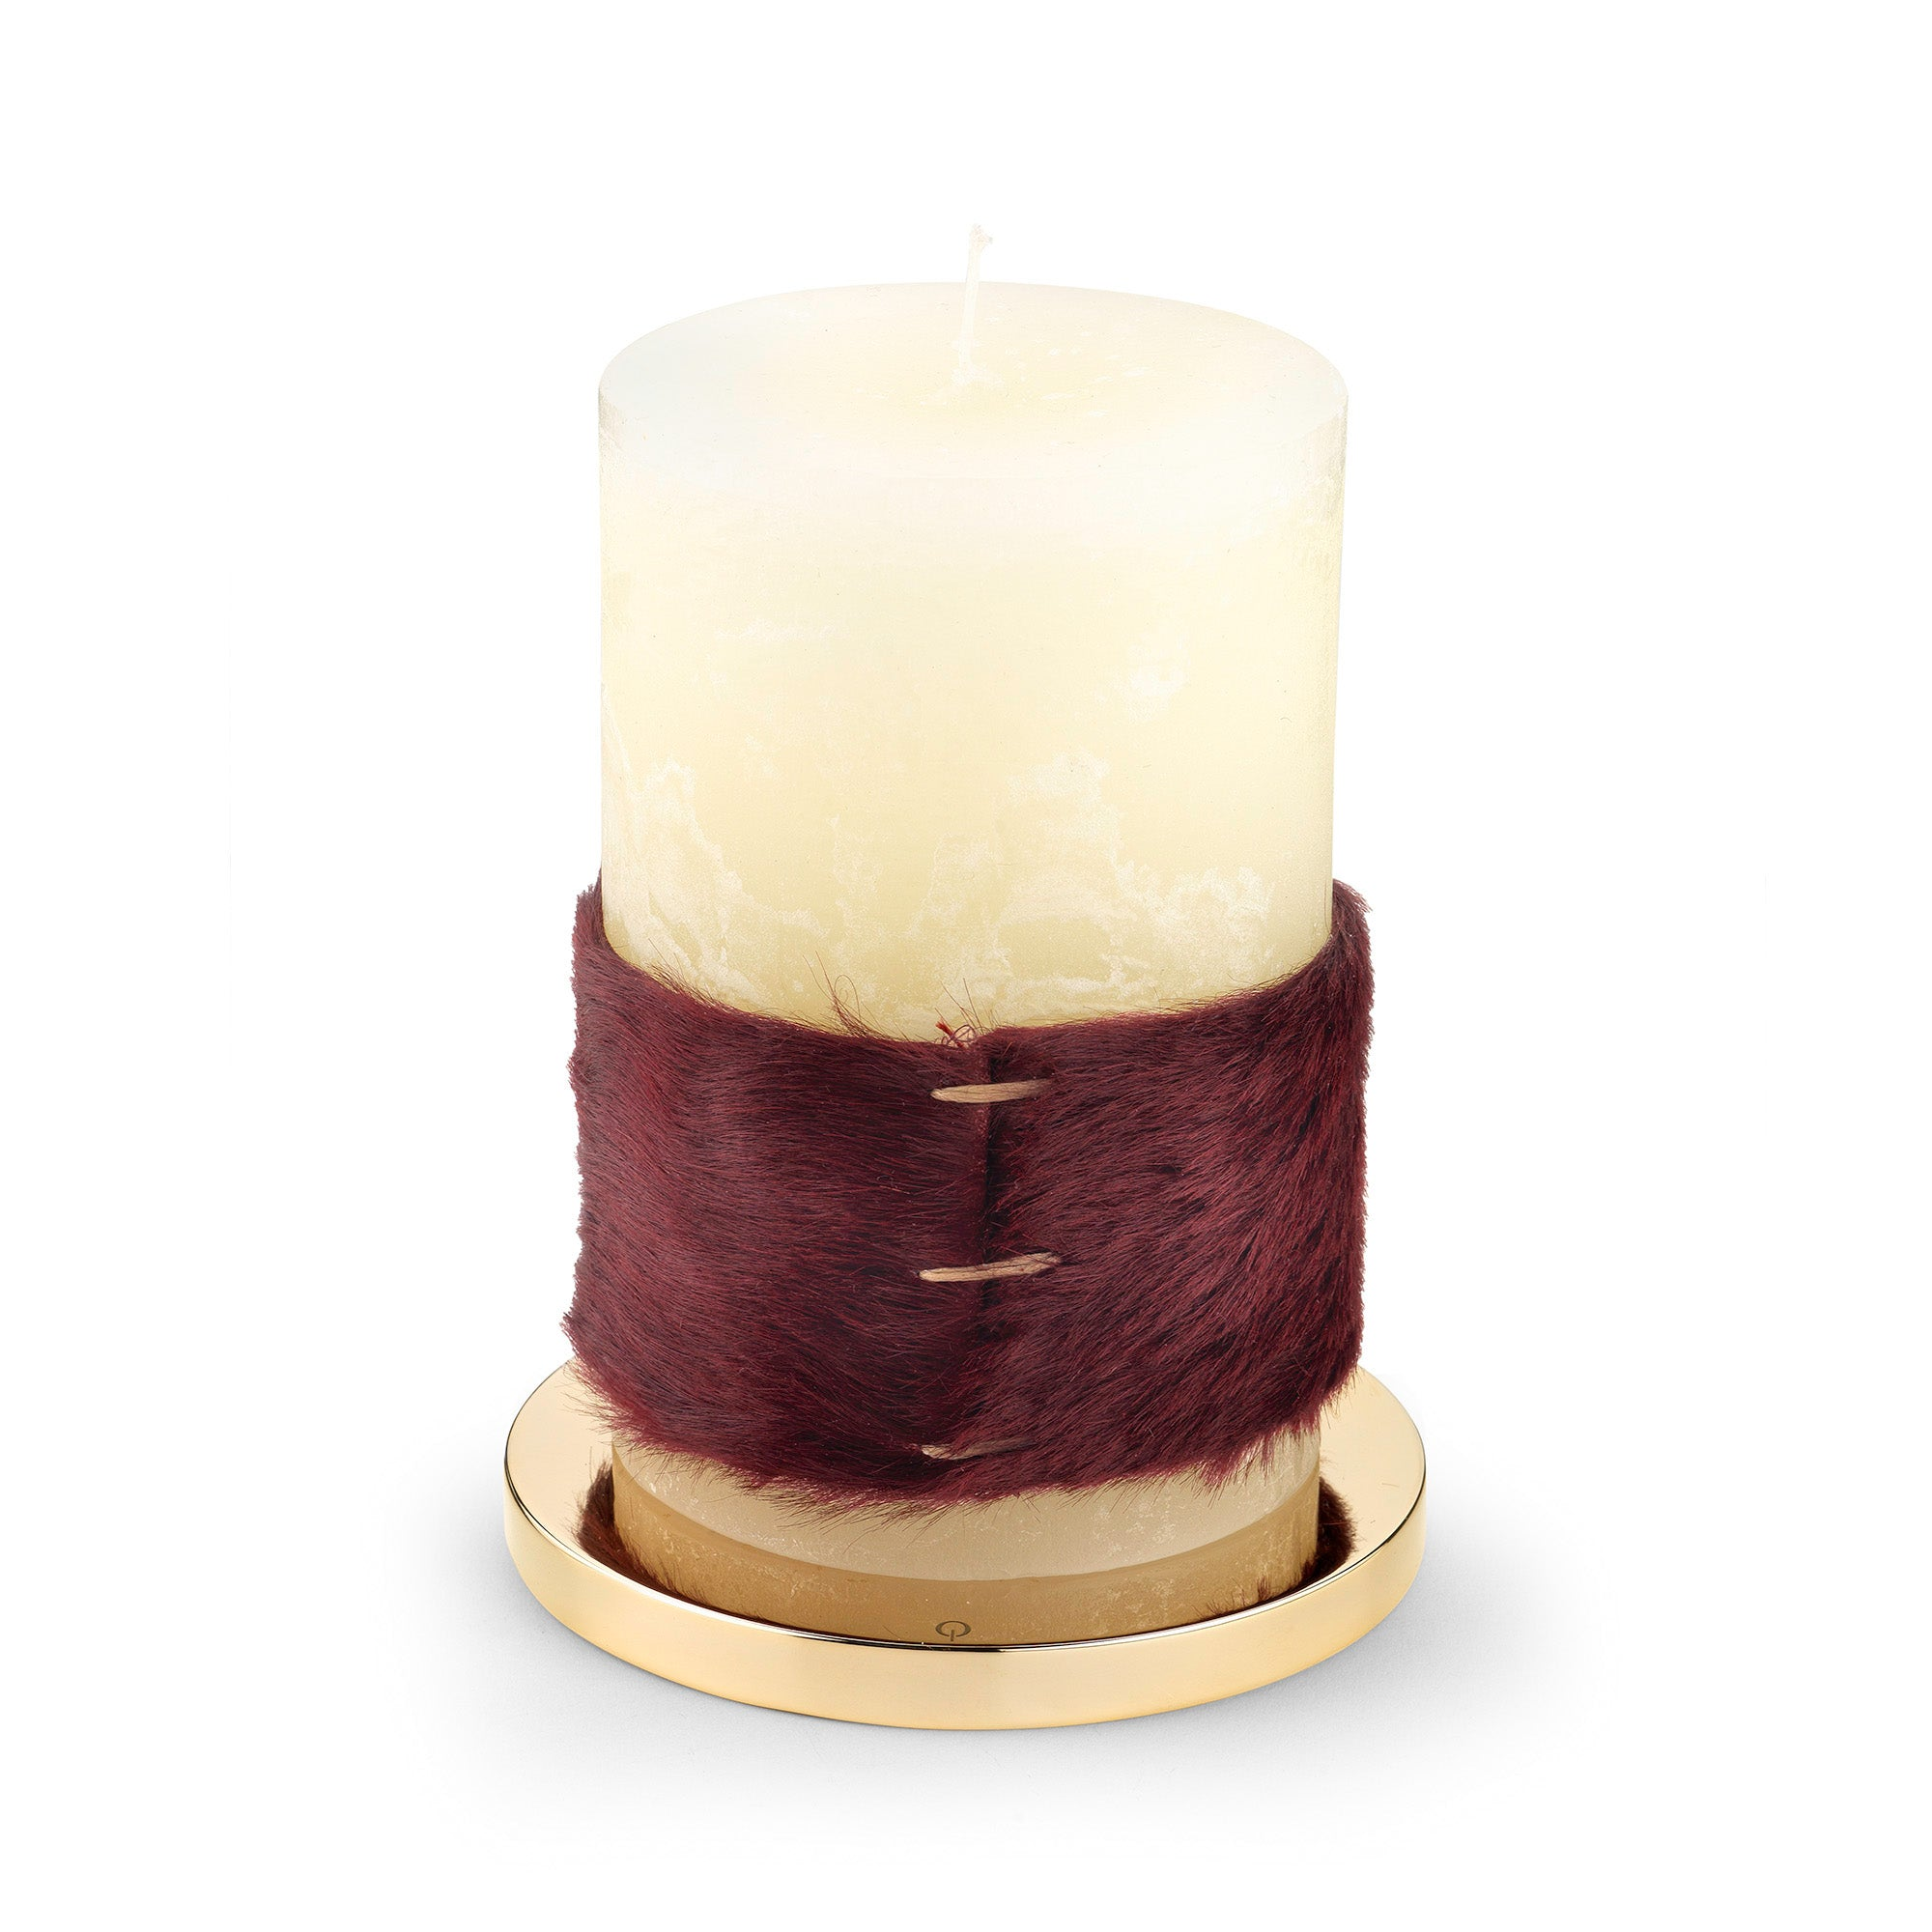 The Gstaad Scented Candle